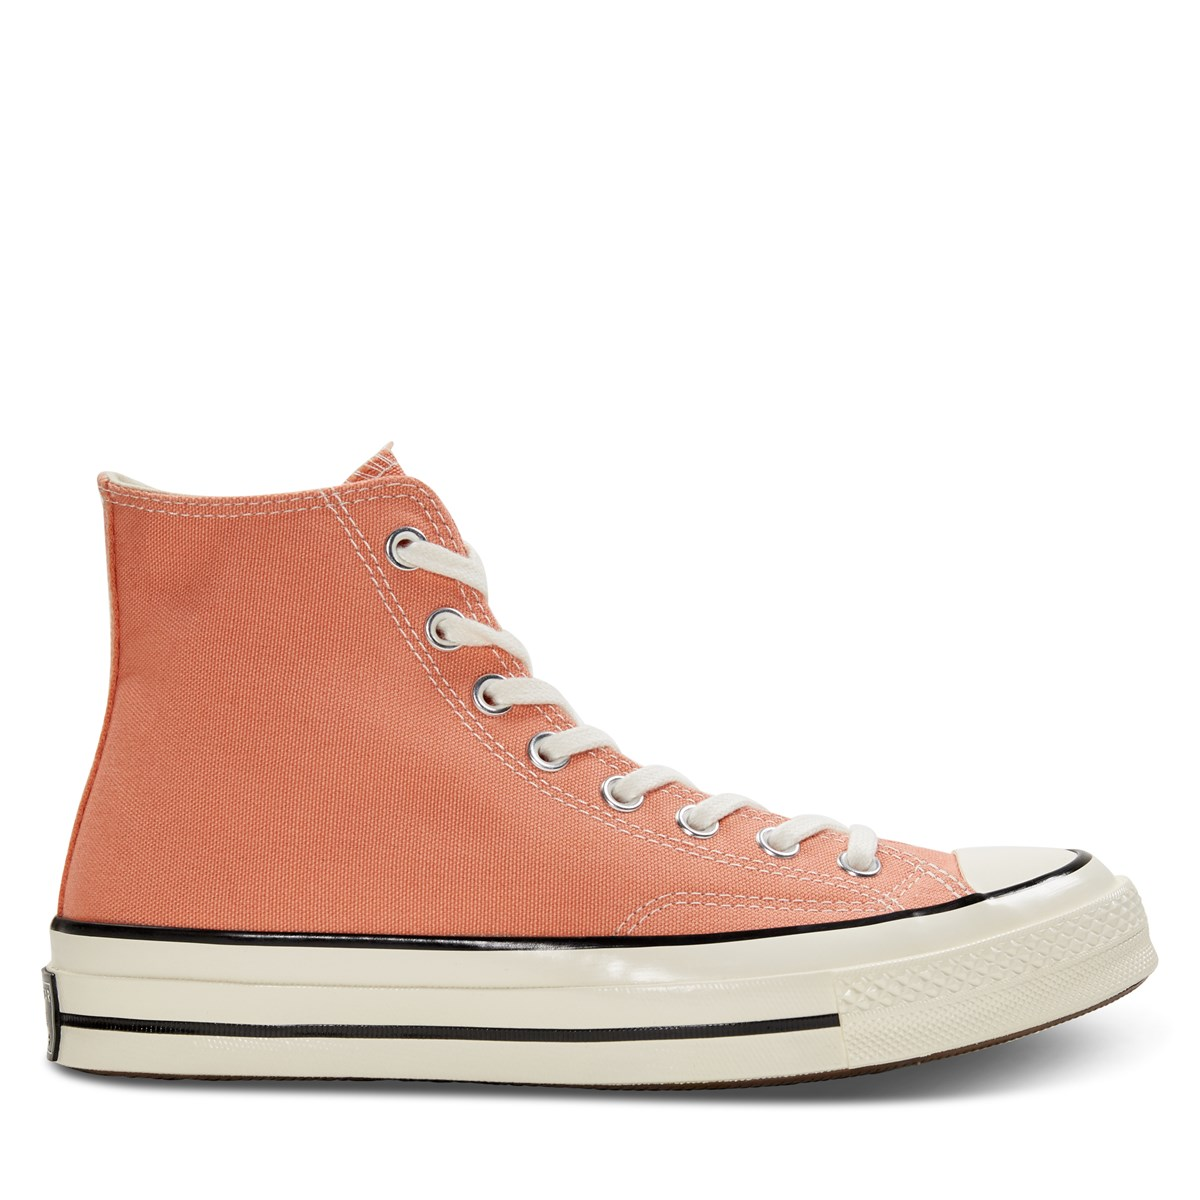 Women's Chuck 70 Vintage Hi Sneakers in Peach